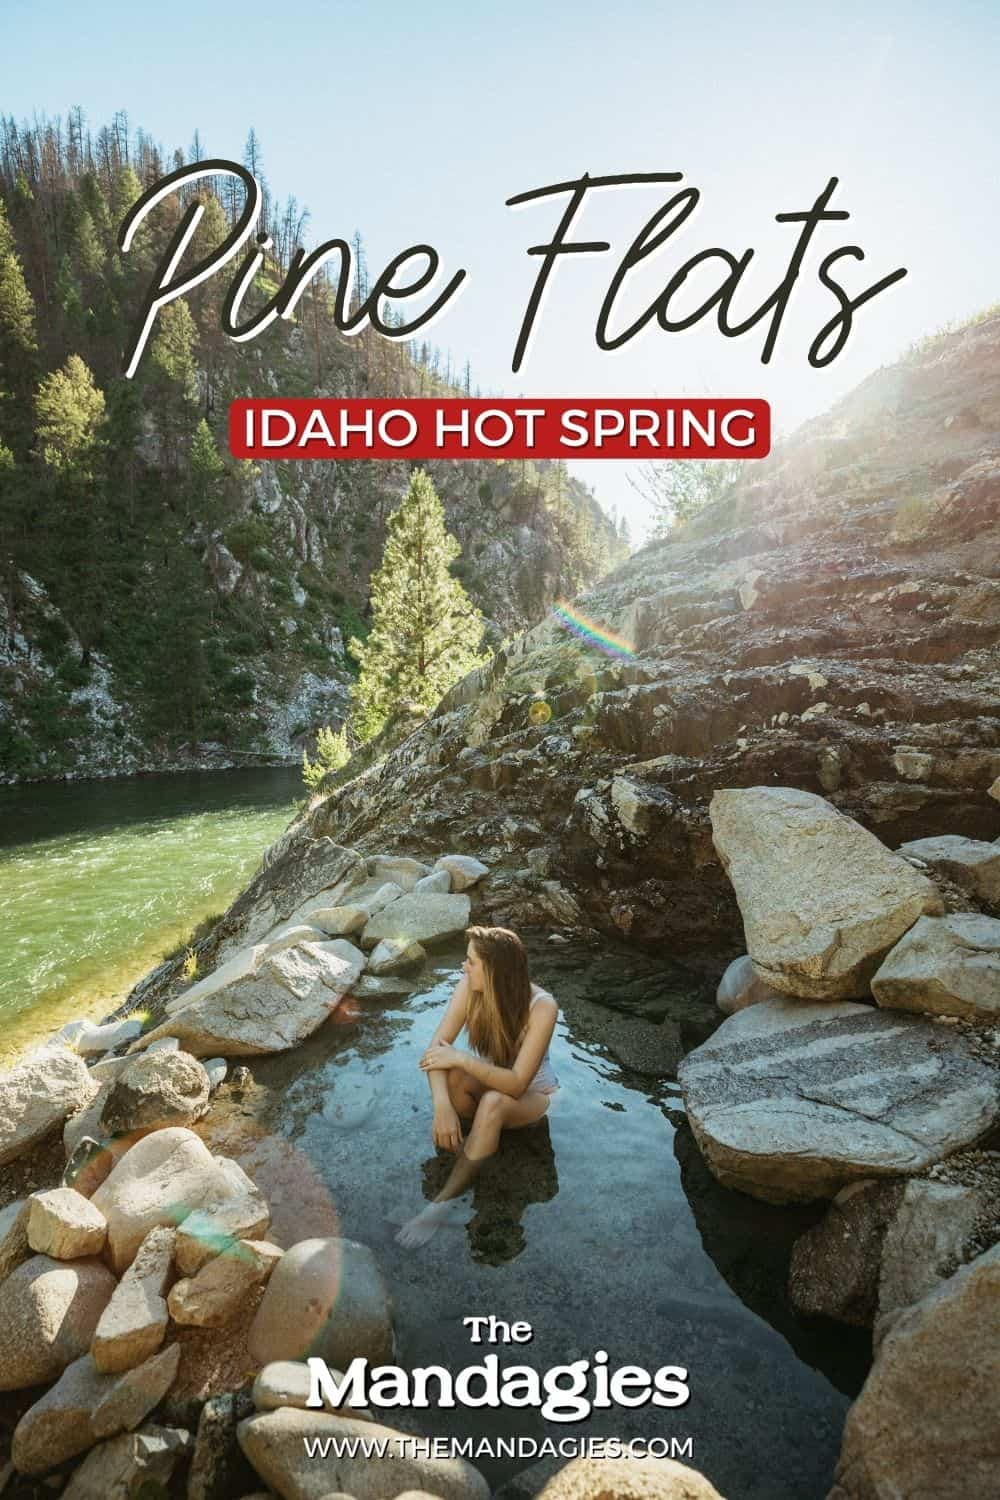 Pine Flats Hot Spring is perched up on the cliffside of the Payette River in Central Idaho. This unique hot springs in Idaho (including a hot waterfall!) has several pools and scenic views and we're sharing everything for your next visit here! #idaho #hotsprings #idahohotsprings #hotspring #boise #centralidaho #winter #payetteriver #travel #idahotravel #adventure #USAtravel #McCallIdaho #photography #sunset #mountains